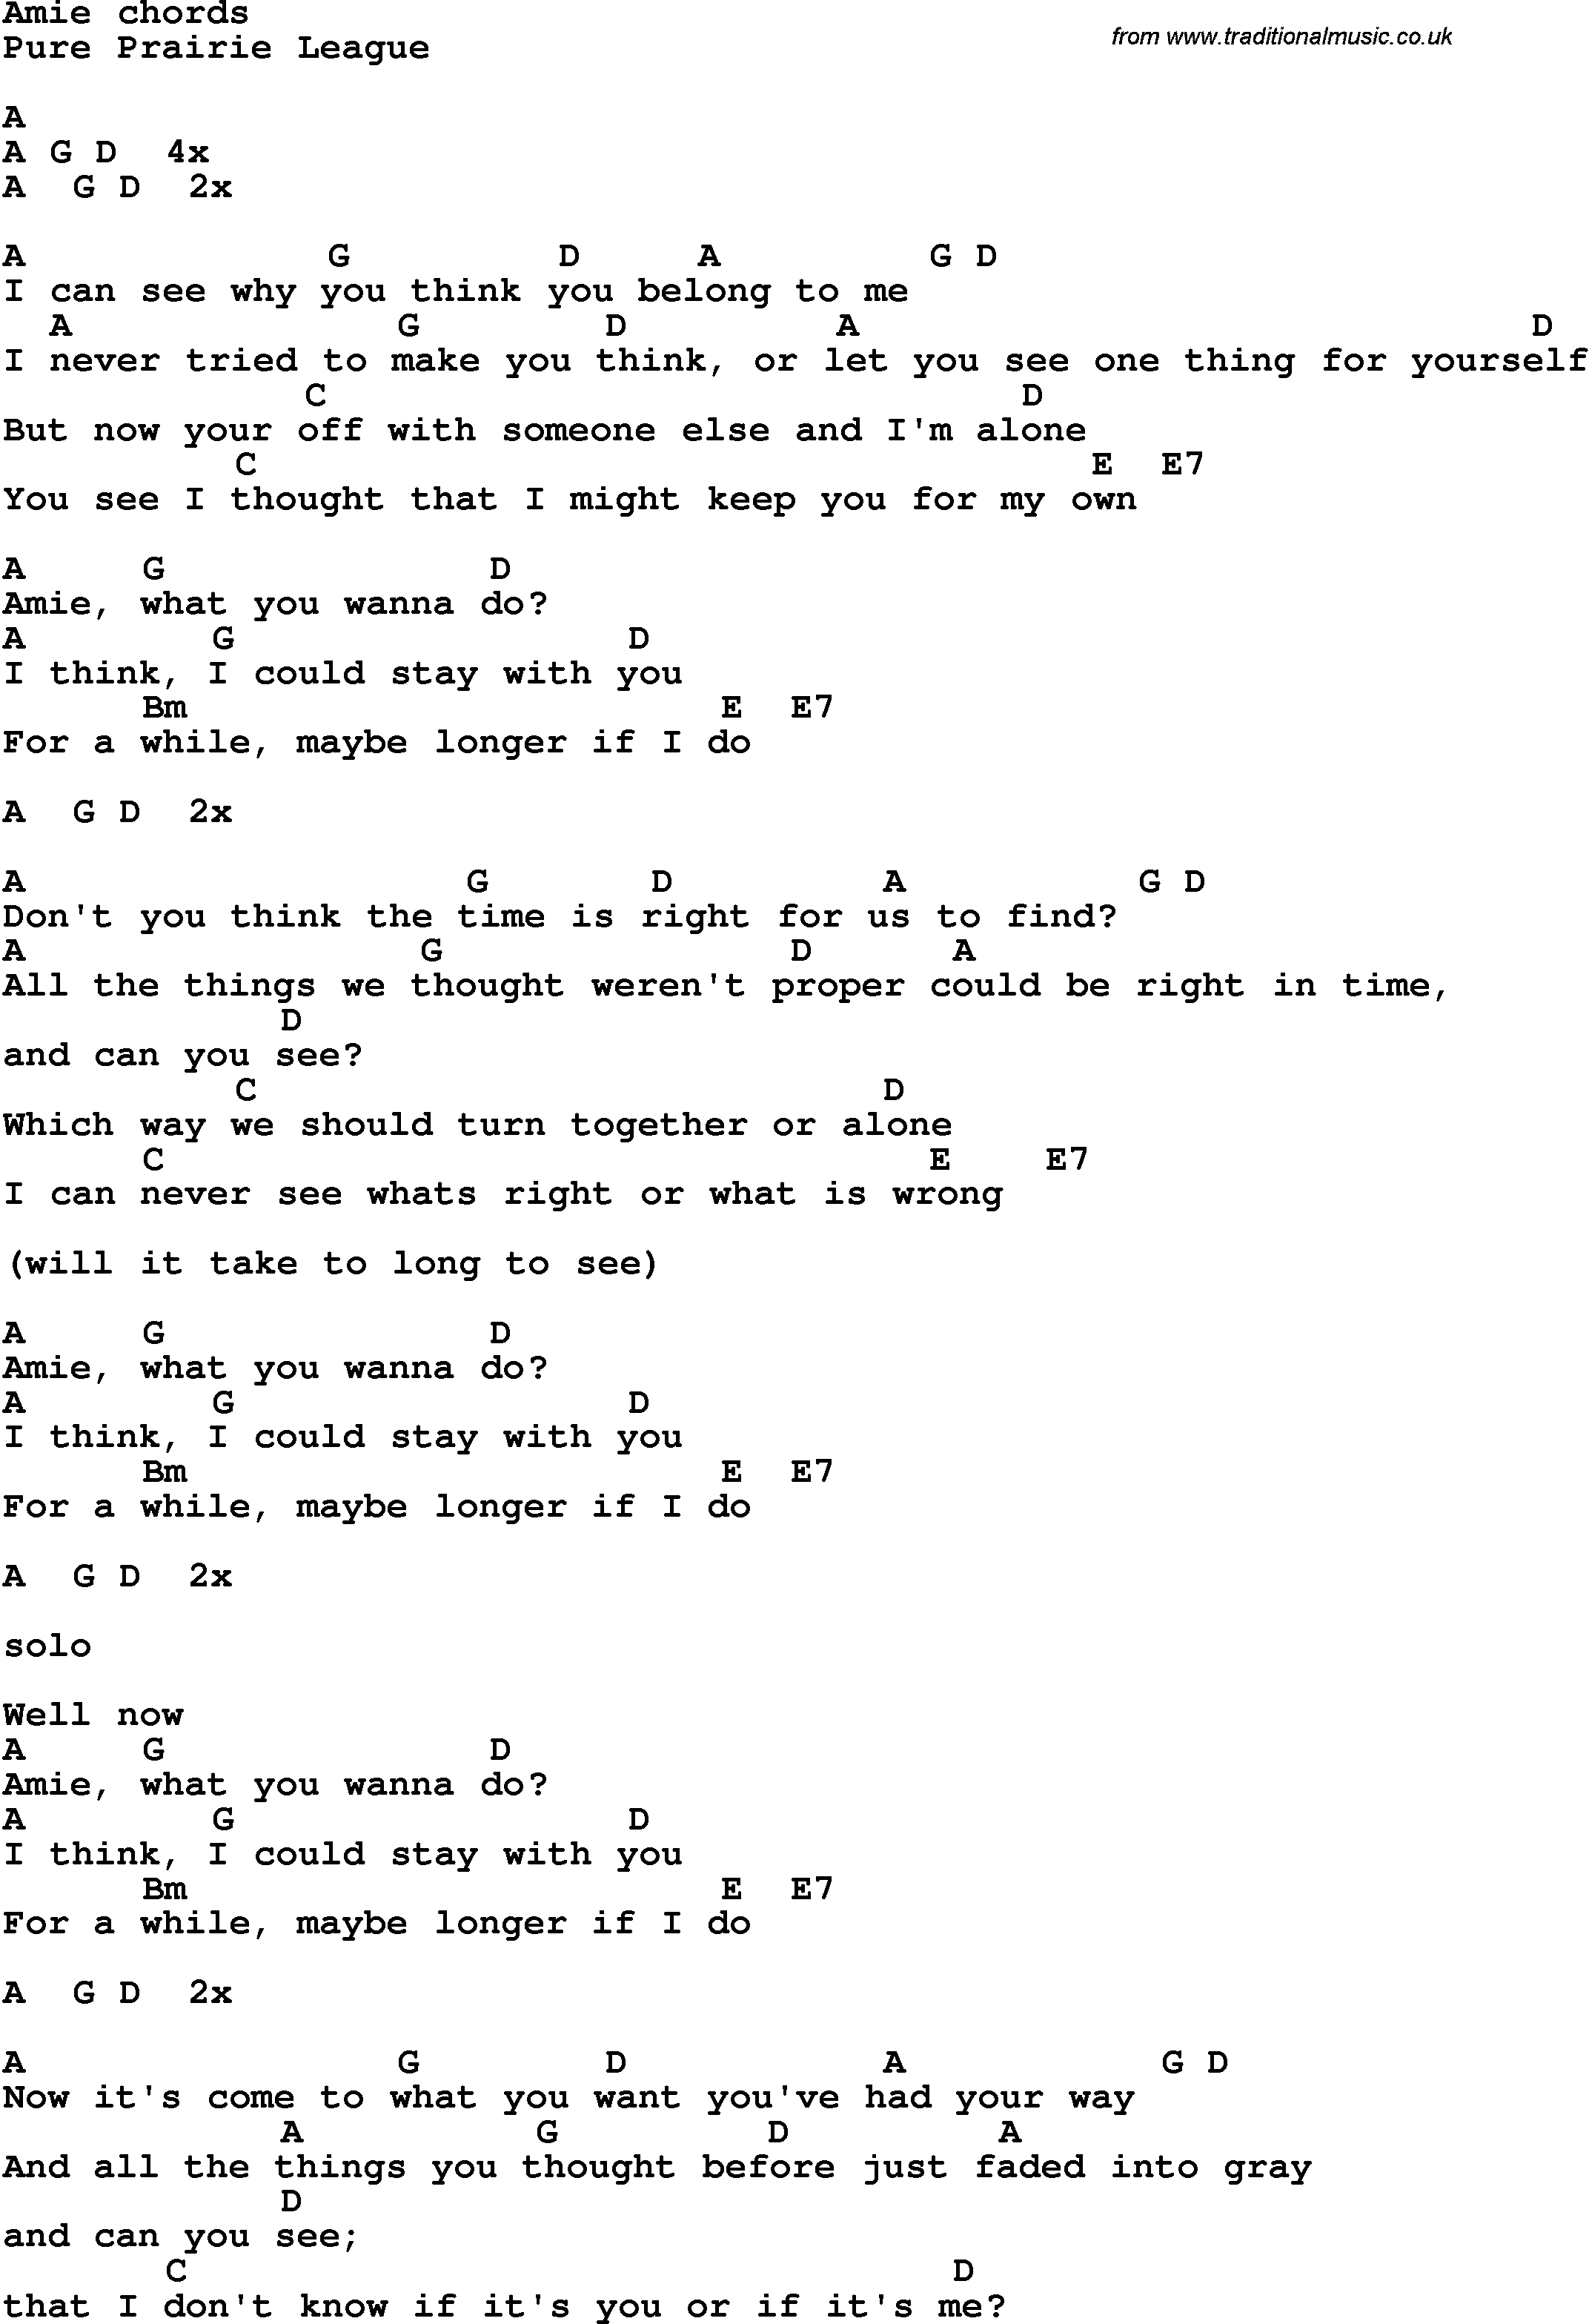 PURE PRAIRIE LEAGUE - AMY LYRICS - SONGLYRICS.com